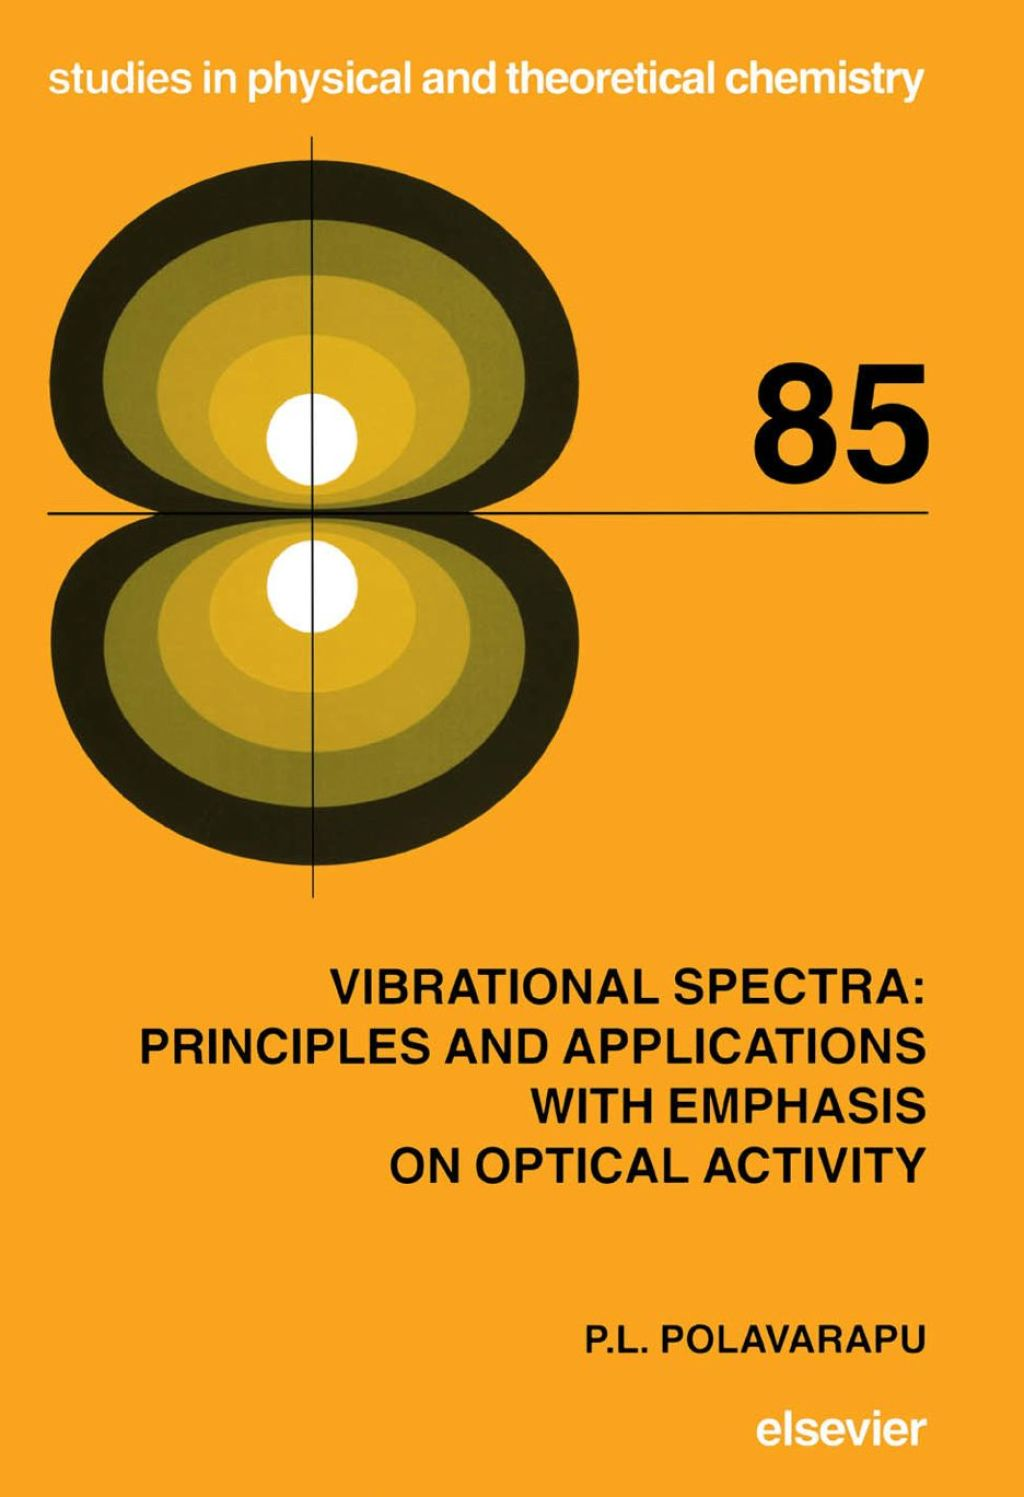 Vibrational Spectra: Principles and Applications with Emphasis on Optical Activity: Principles and Applications with Emphasis on Optical Activity (ebook) eBooks